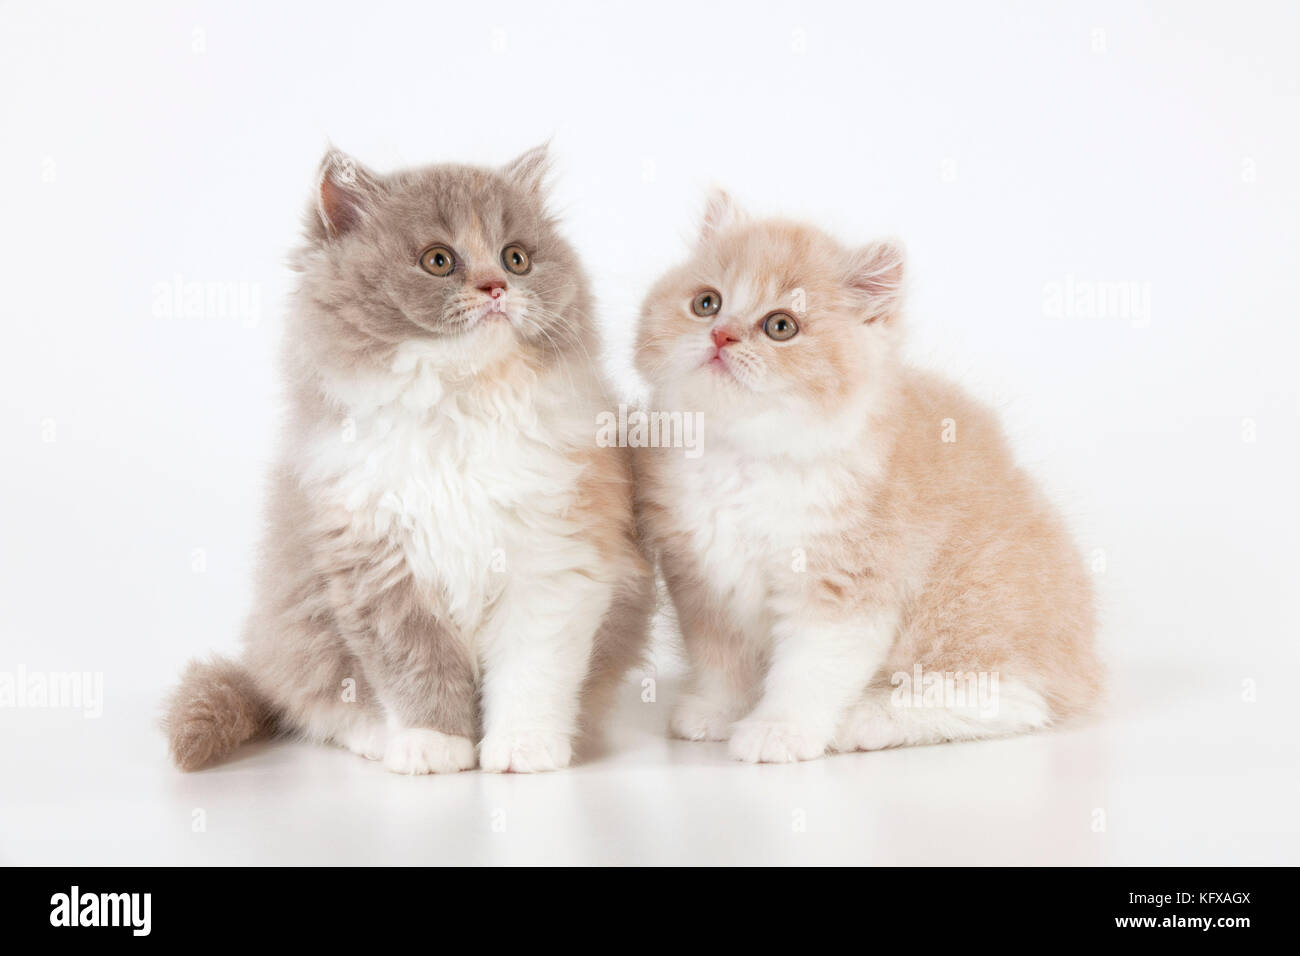 CAT - British longhaired cats. sitting together. Stock Photo